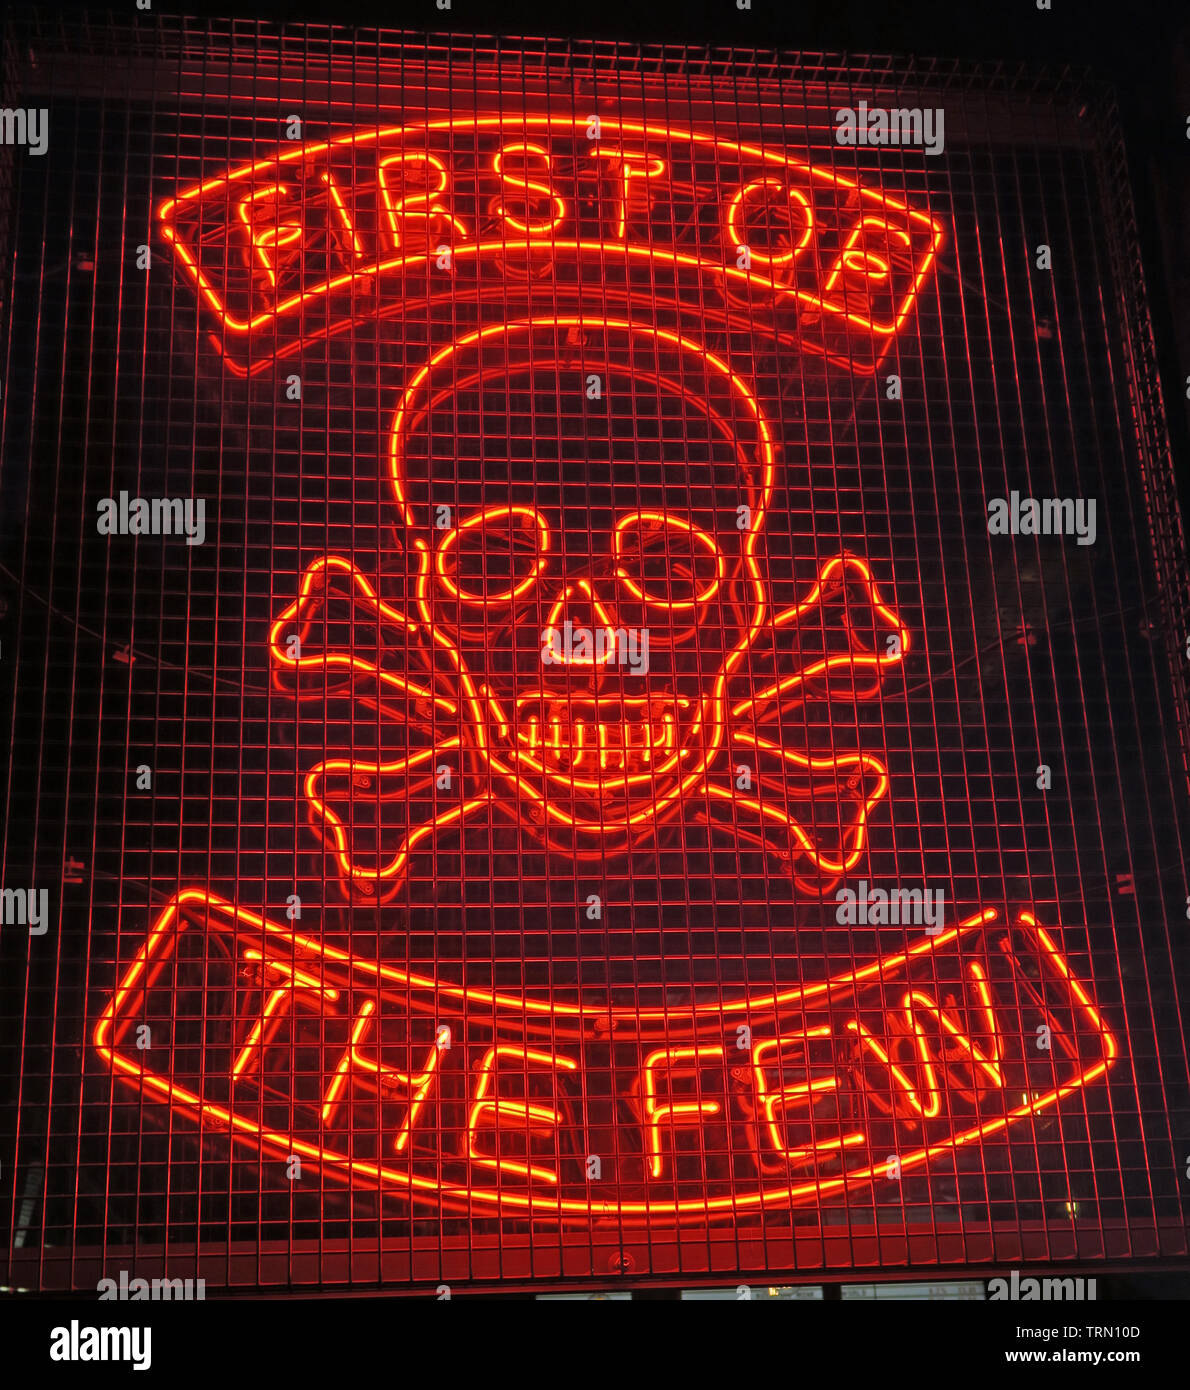 First Of The Few, Skull and Crossbones Neon sign, Brewdog bar, 17 Gallowgate, Aberdeen, Scotland, UK, AB25 1EB, UK Stock Photo